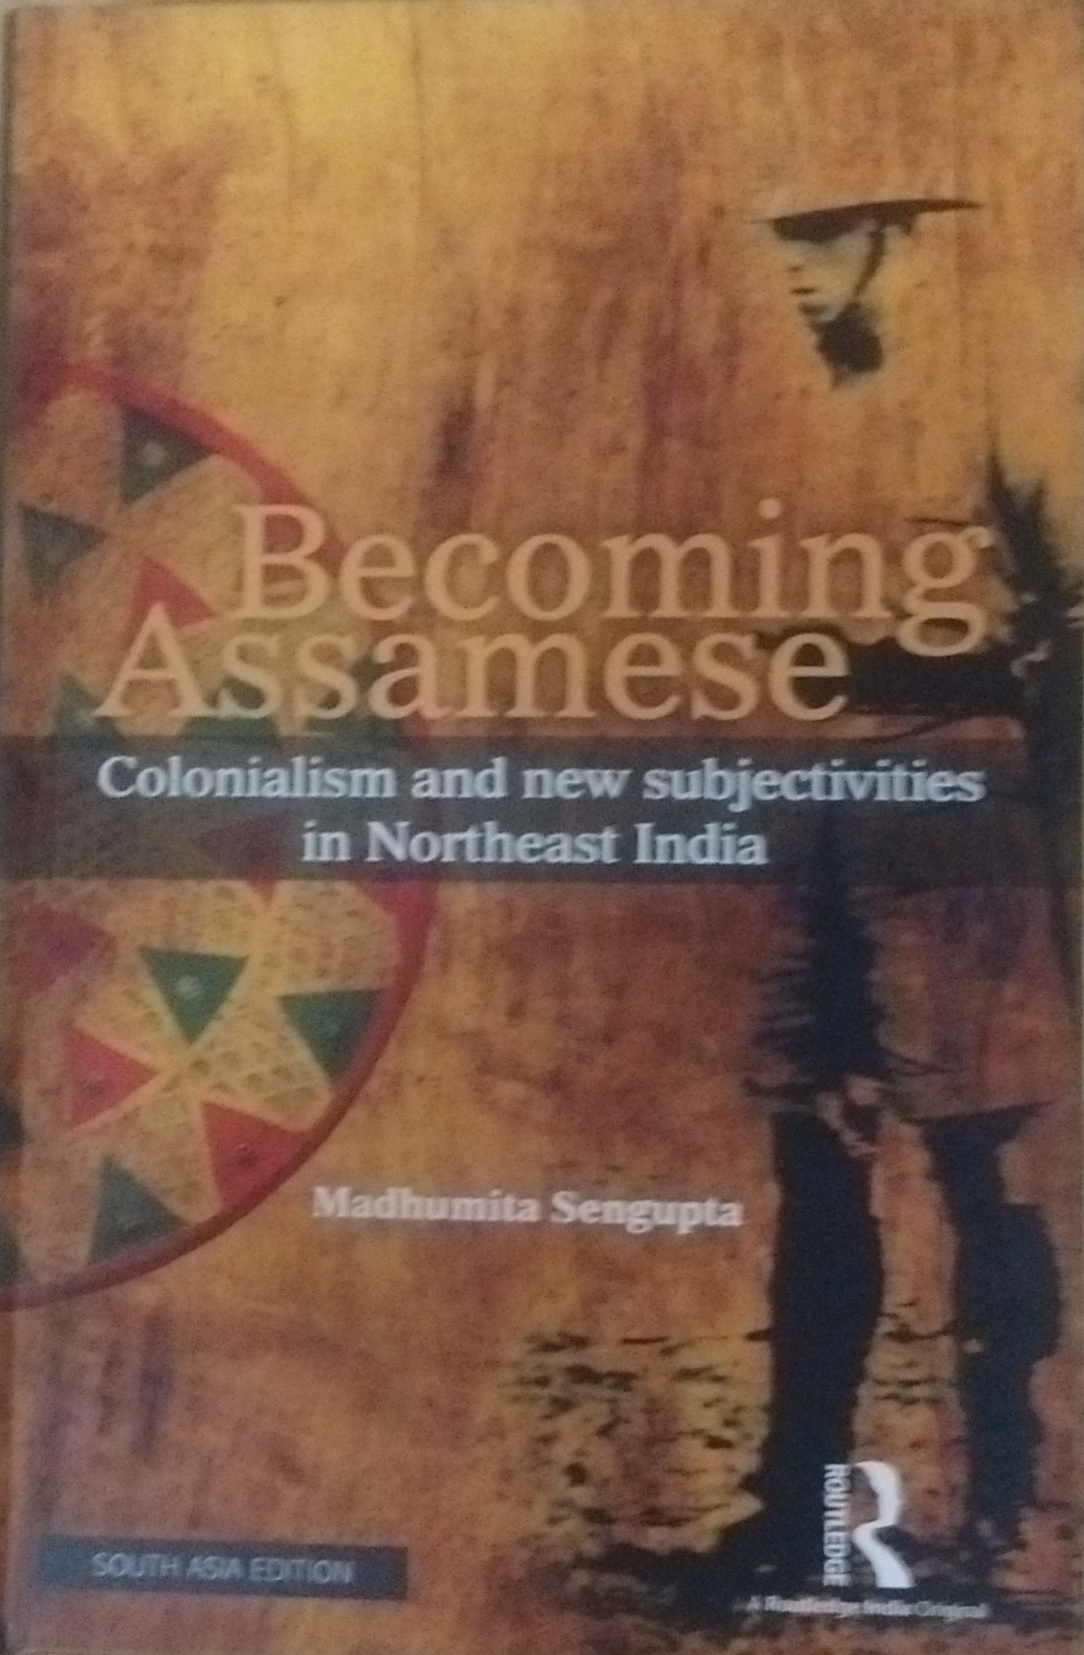 Becoming Assamese: Colonialism and New Subjectivit…